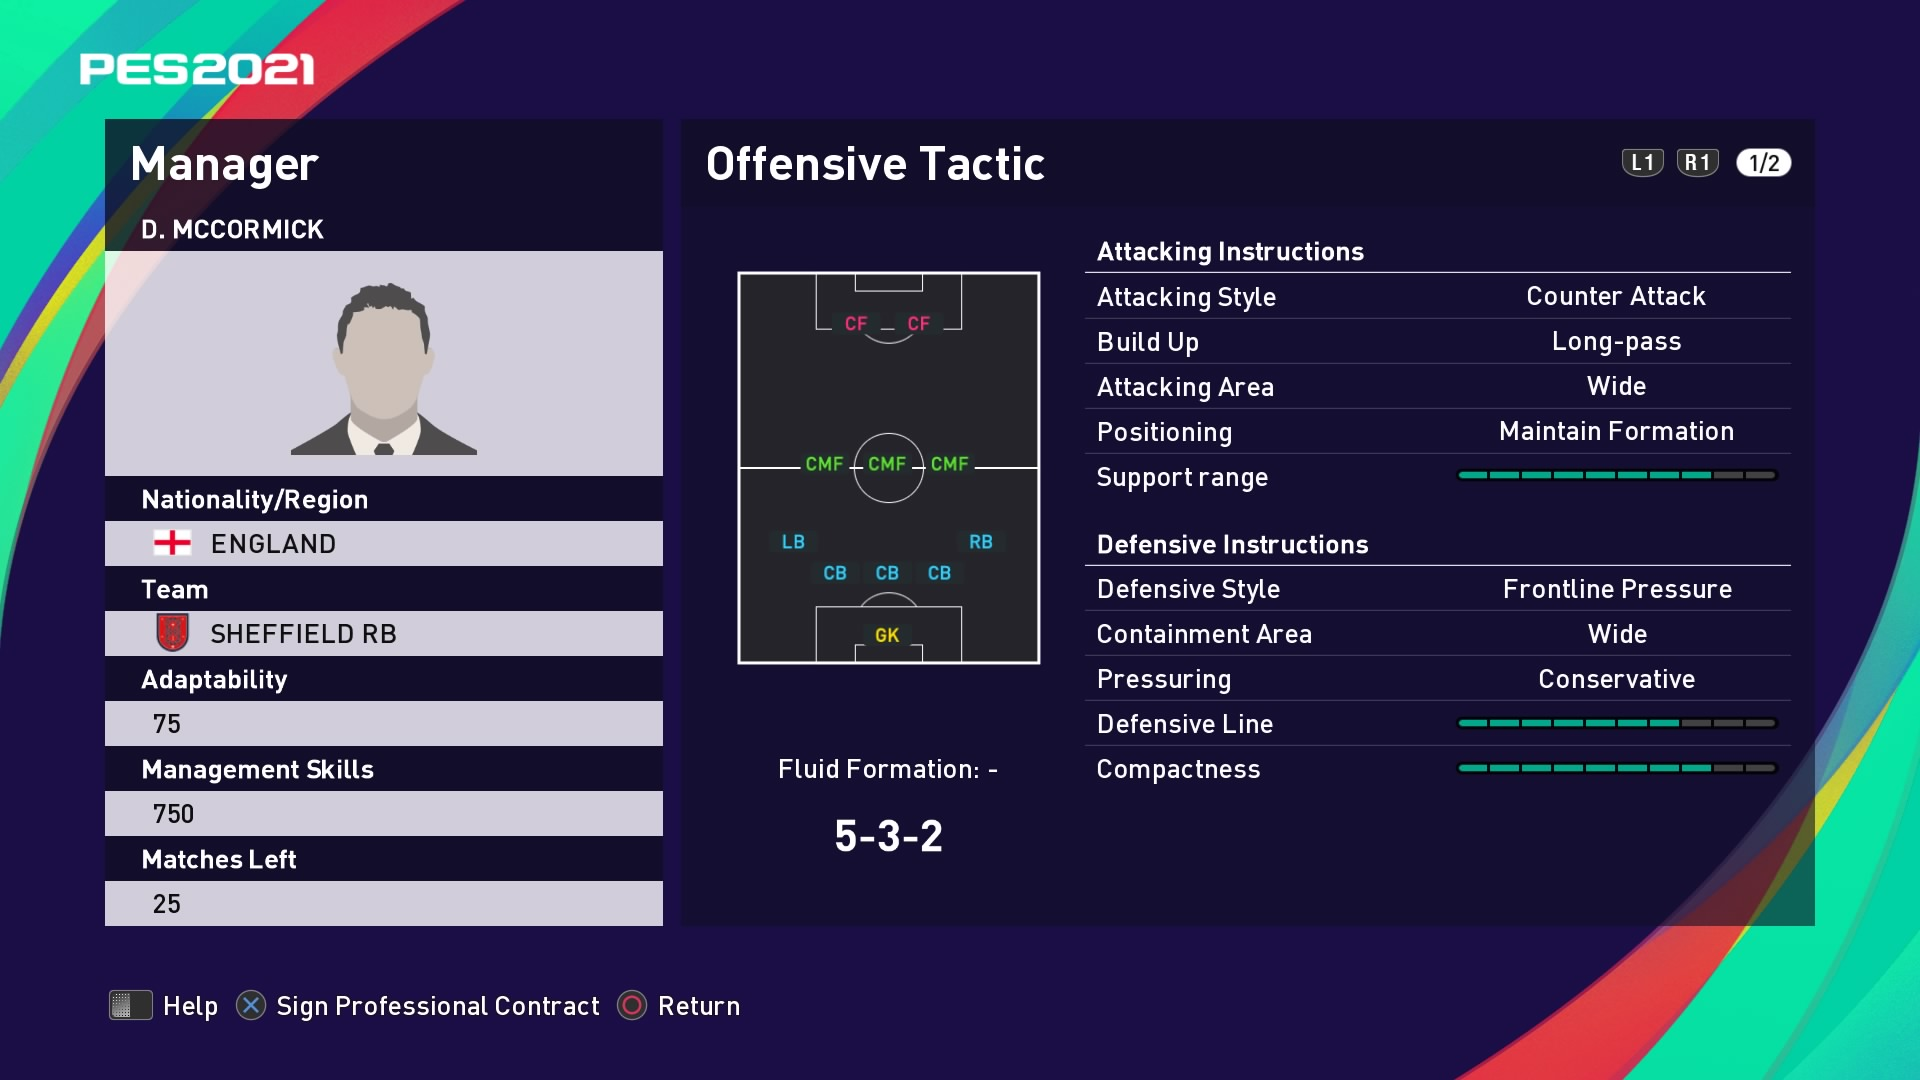 D. McCormick (Chris Wilder) Offensive Tactic in PES 2021 myClub